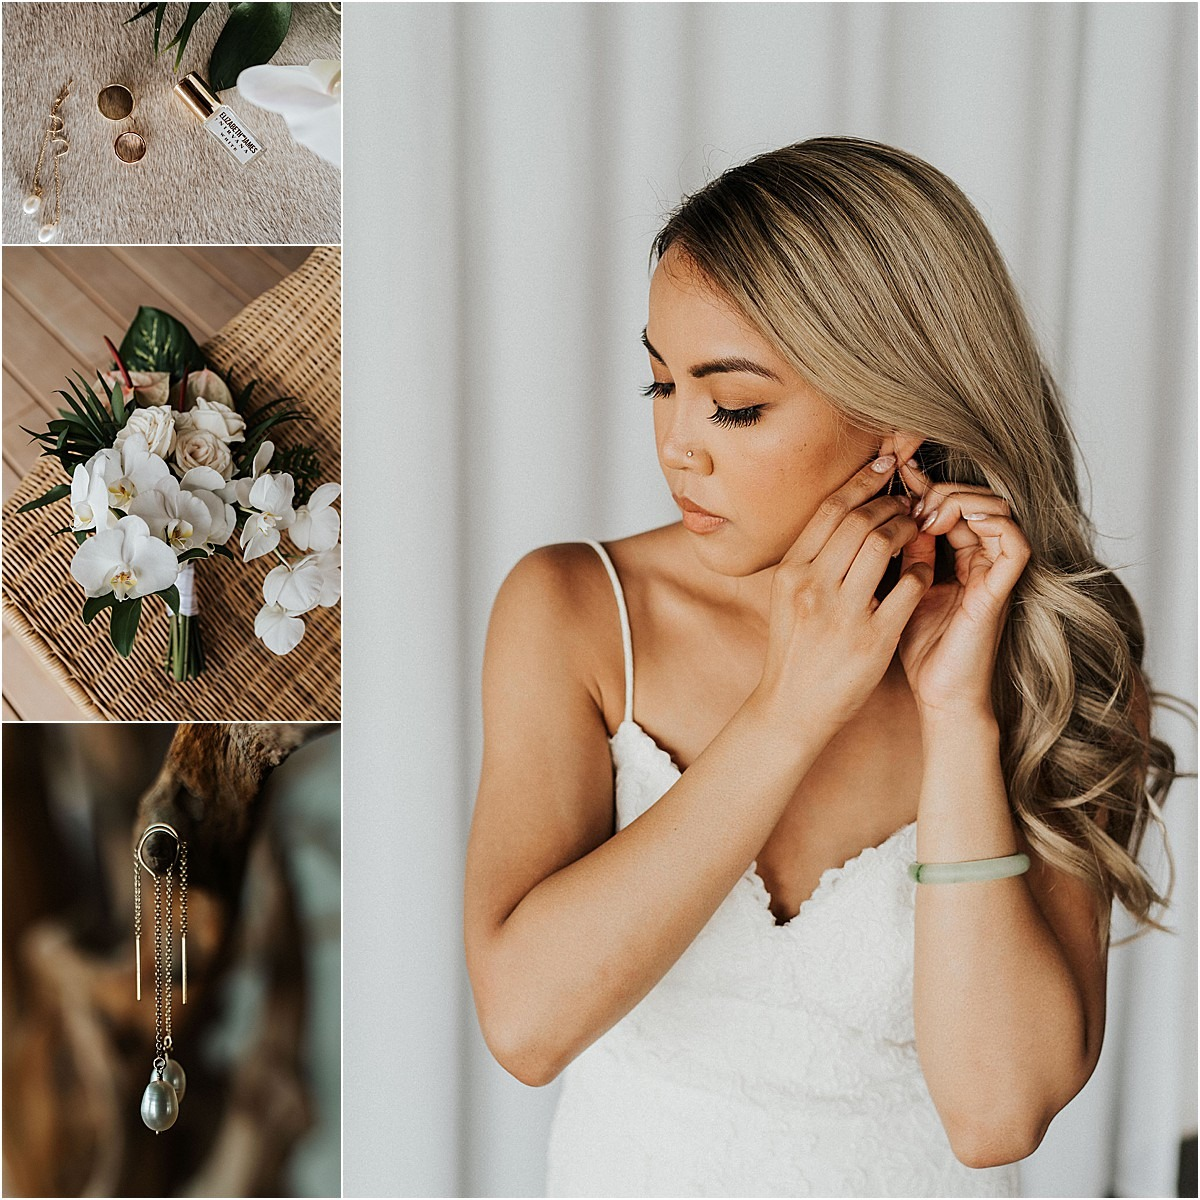 bride getting glam for big day accessories earrings dress